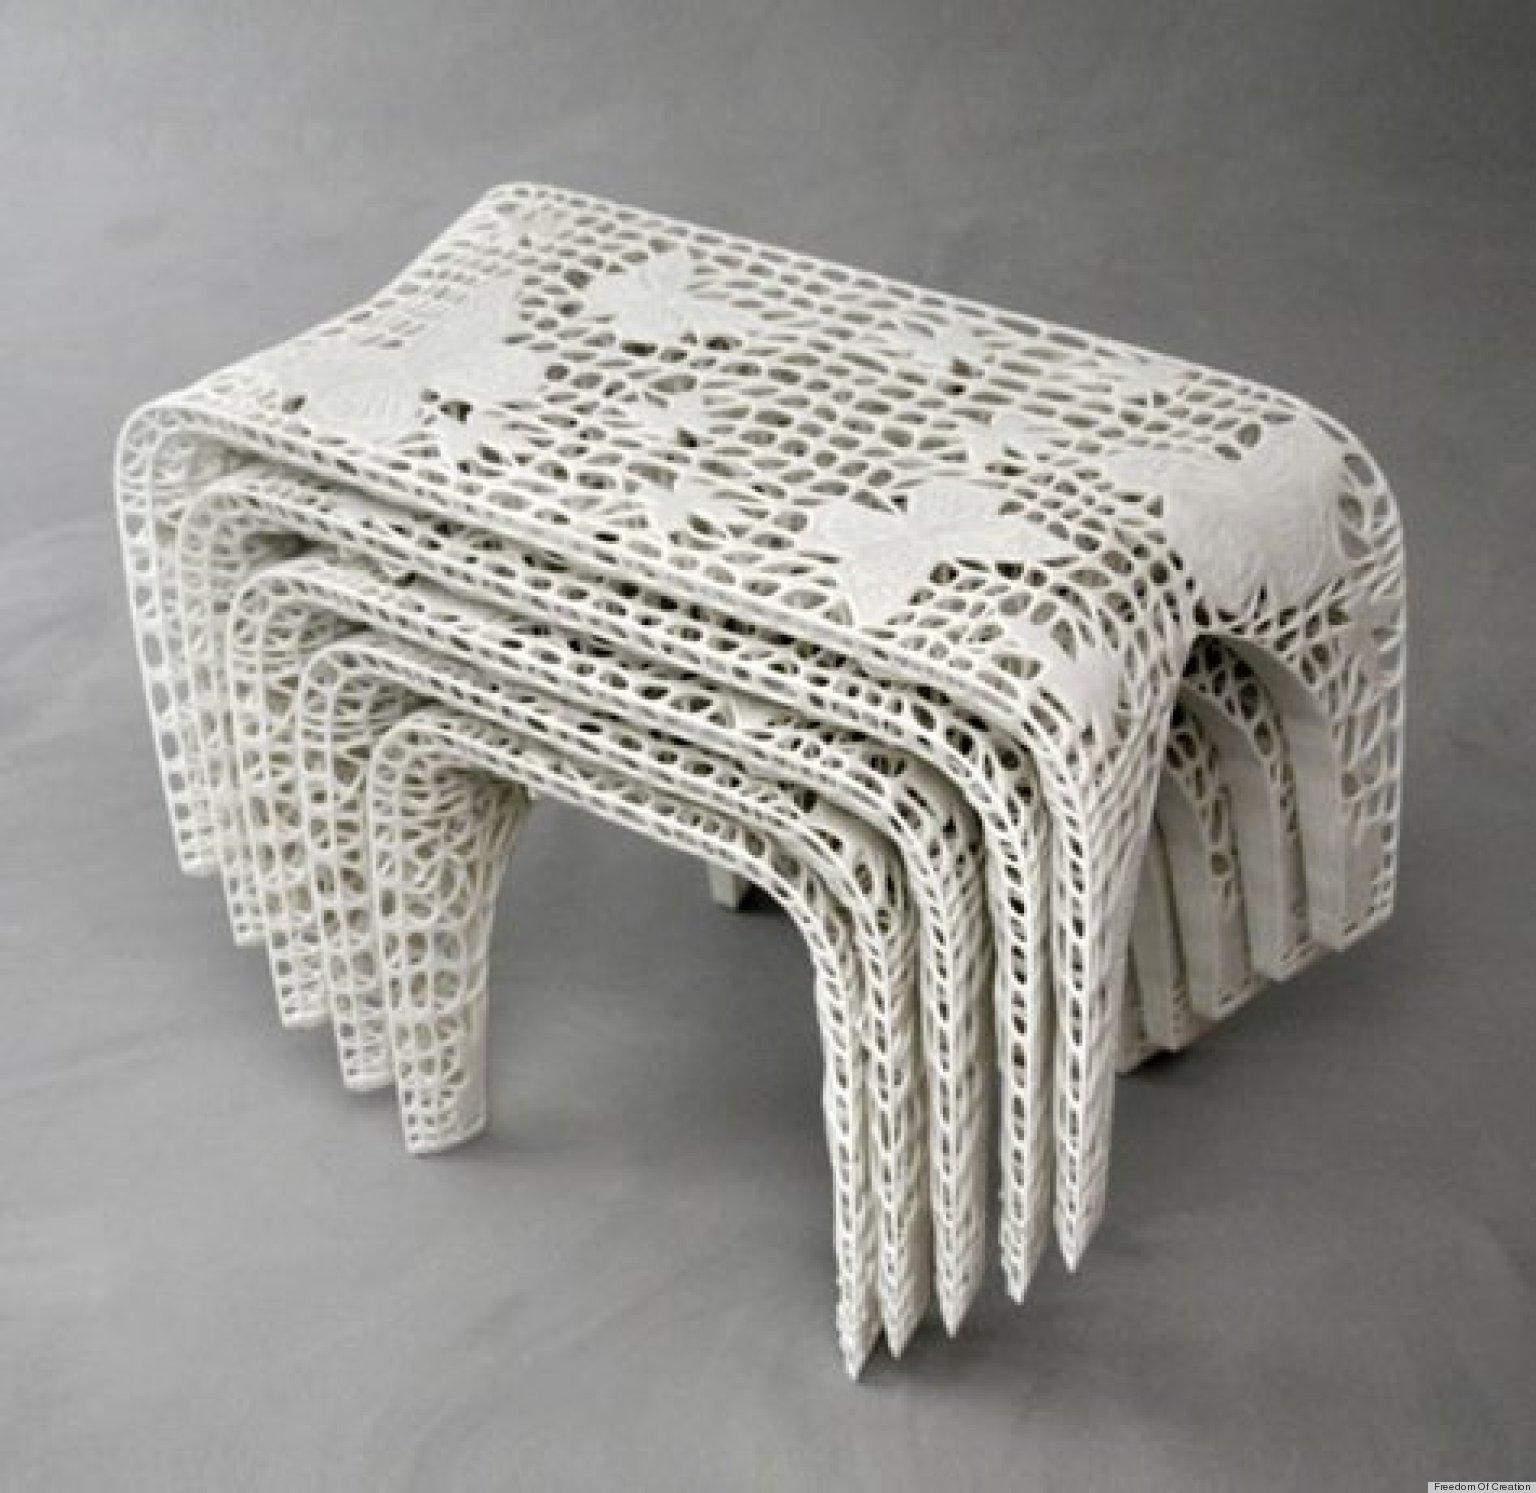 3d printing cool home decor and furniture designs on the for Furniture 3d printing